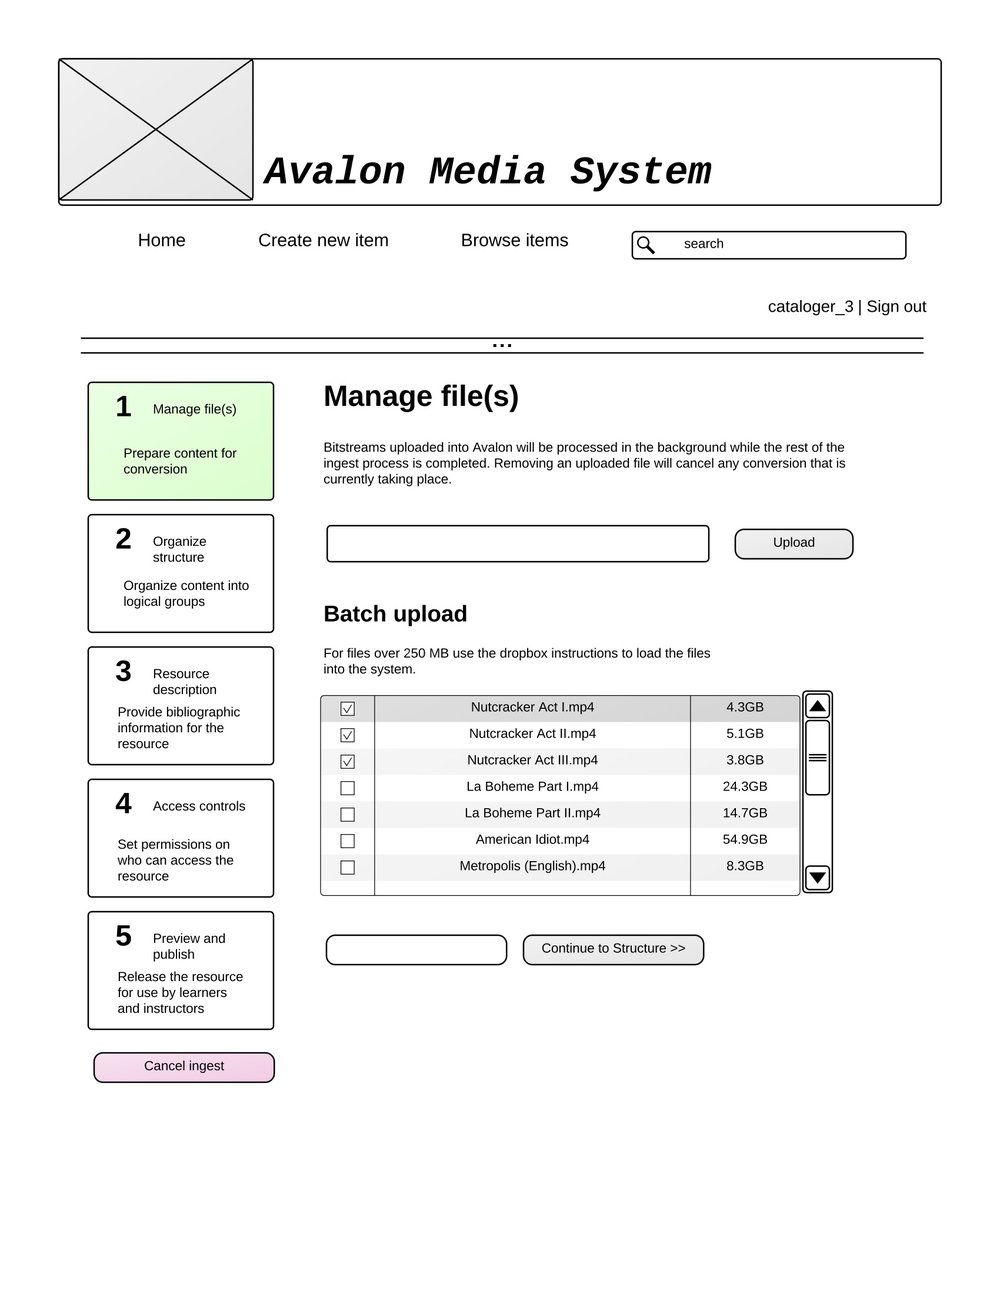 Avalon Ingest workflow (Cover Image).jpg